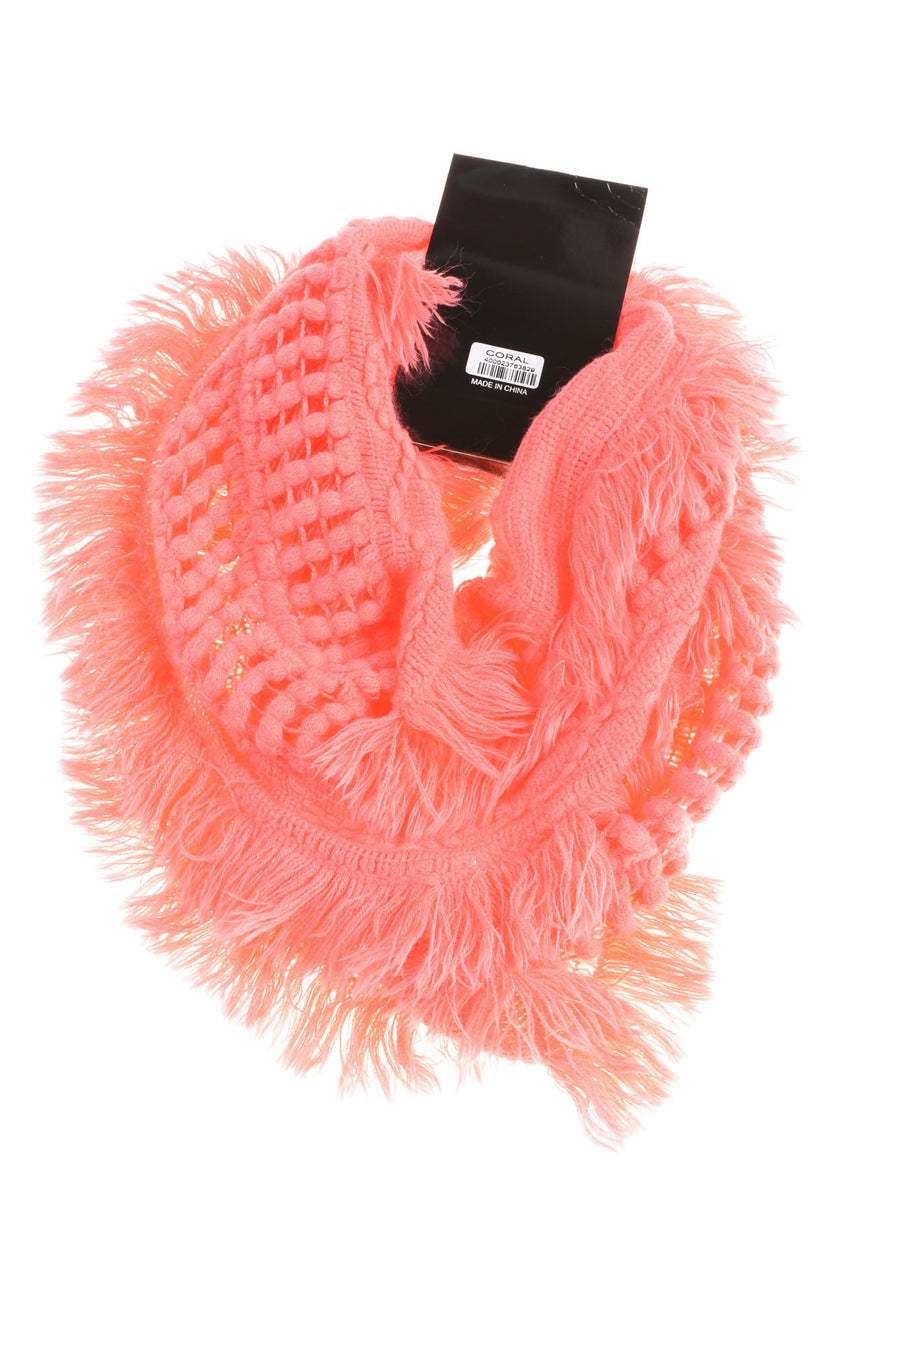 NEW No Brand Women's Scarf N/A Coral